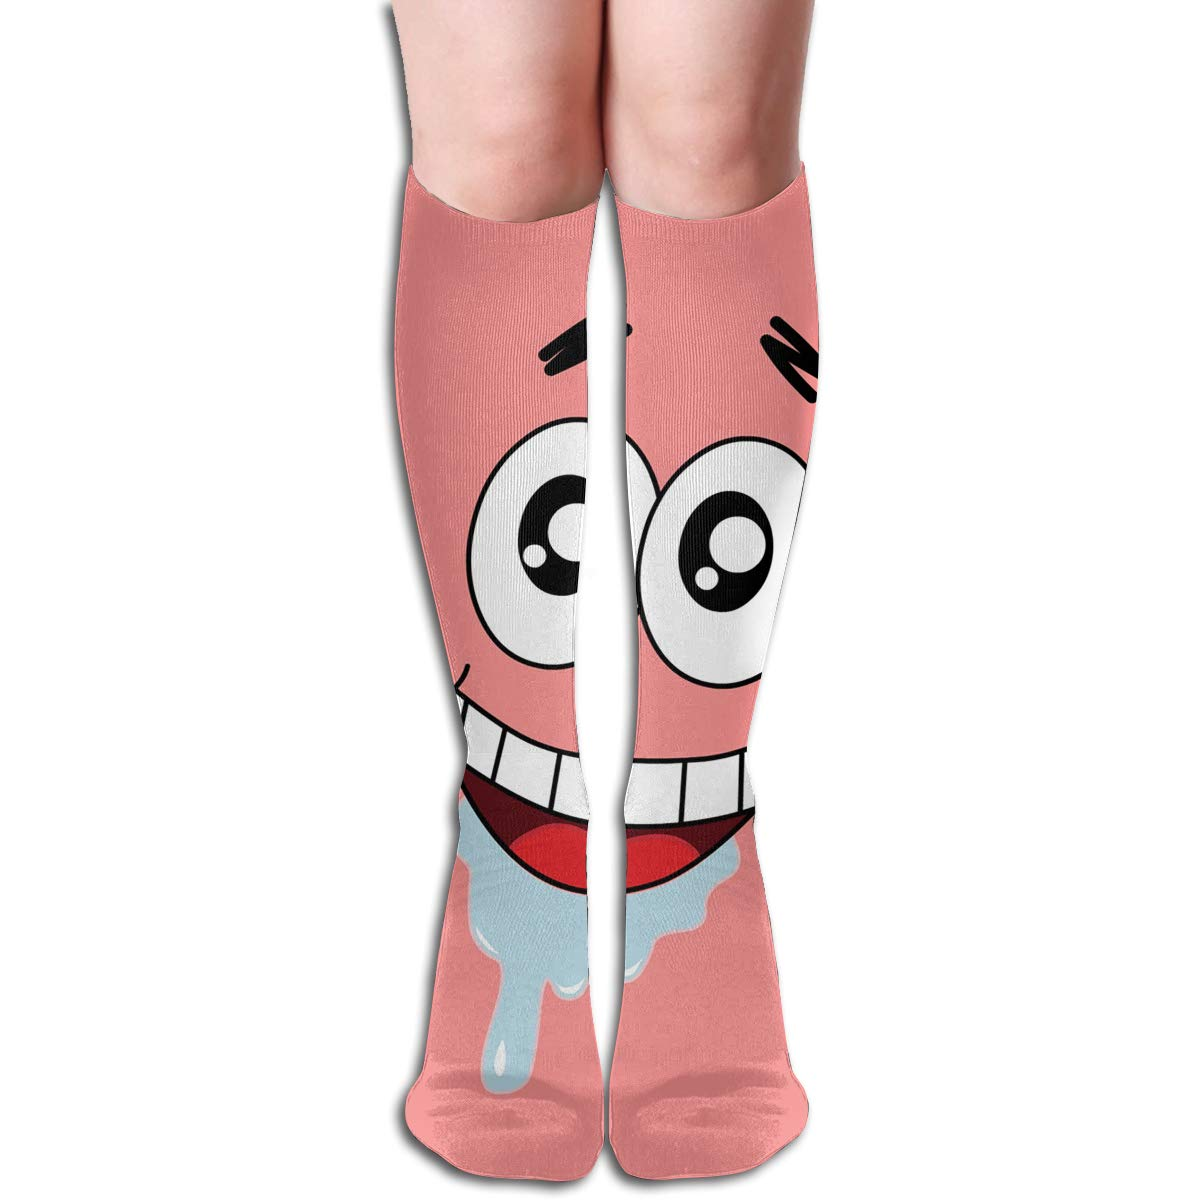 JINUNNU Knee High Socks Spongebob Squarepants Drool Funny Running Socks for Girl Women